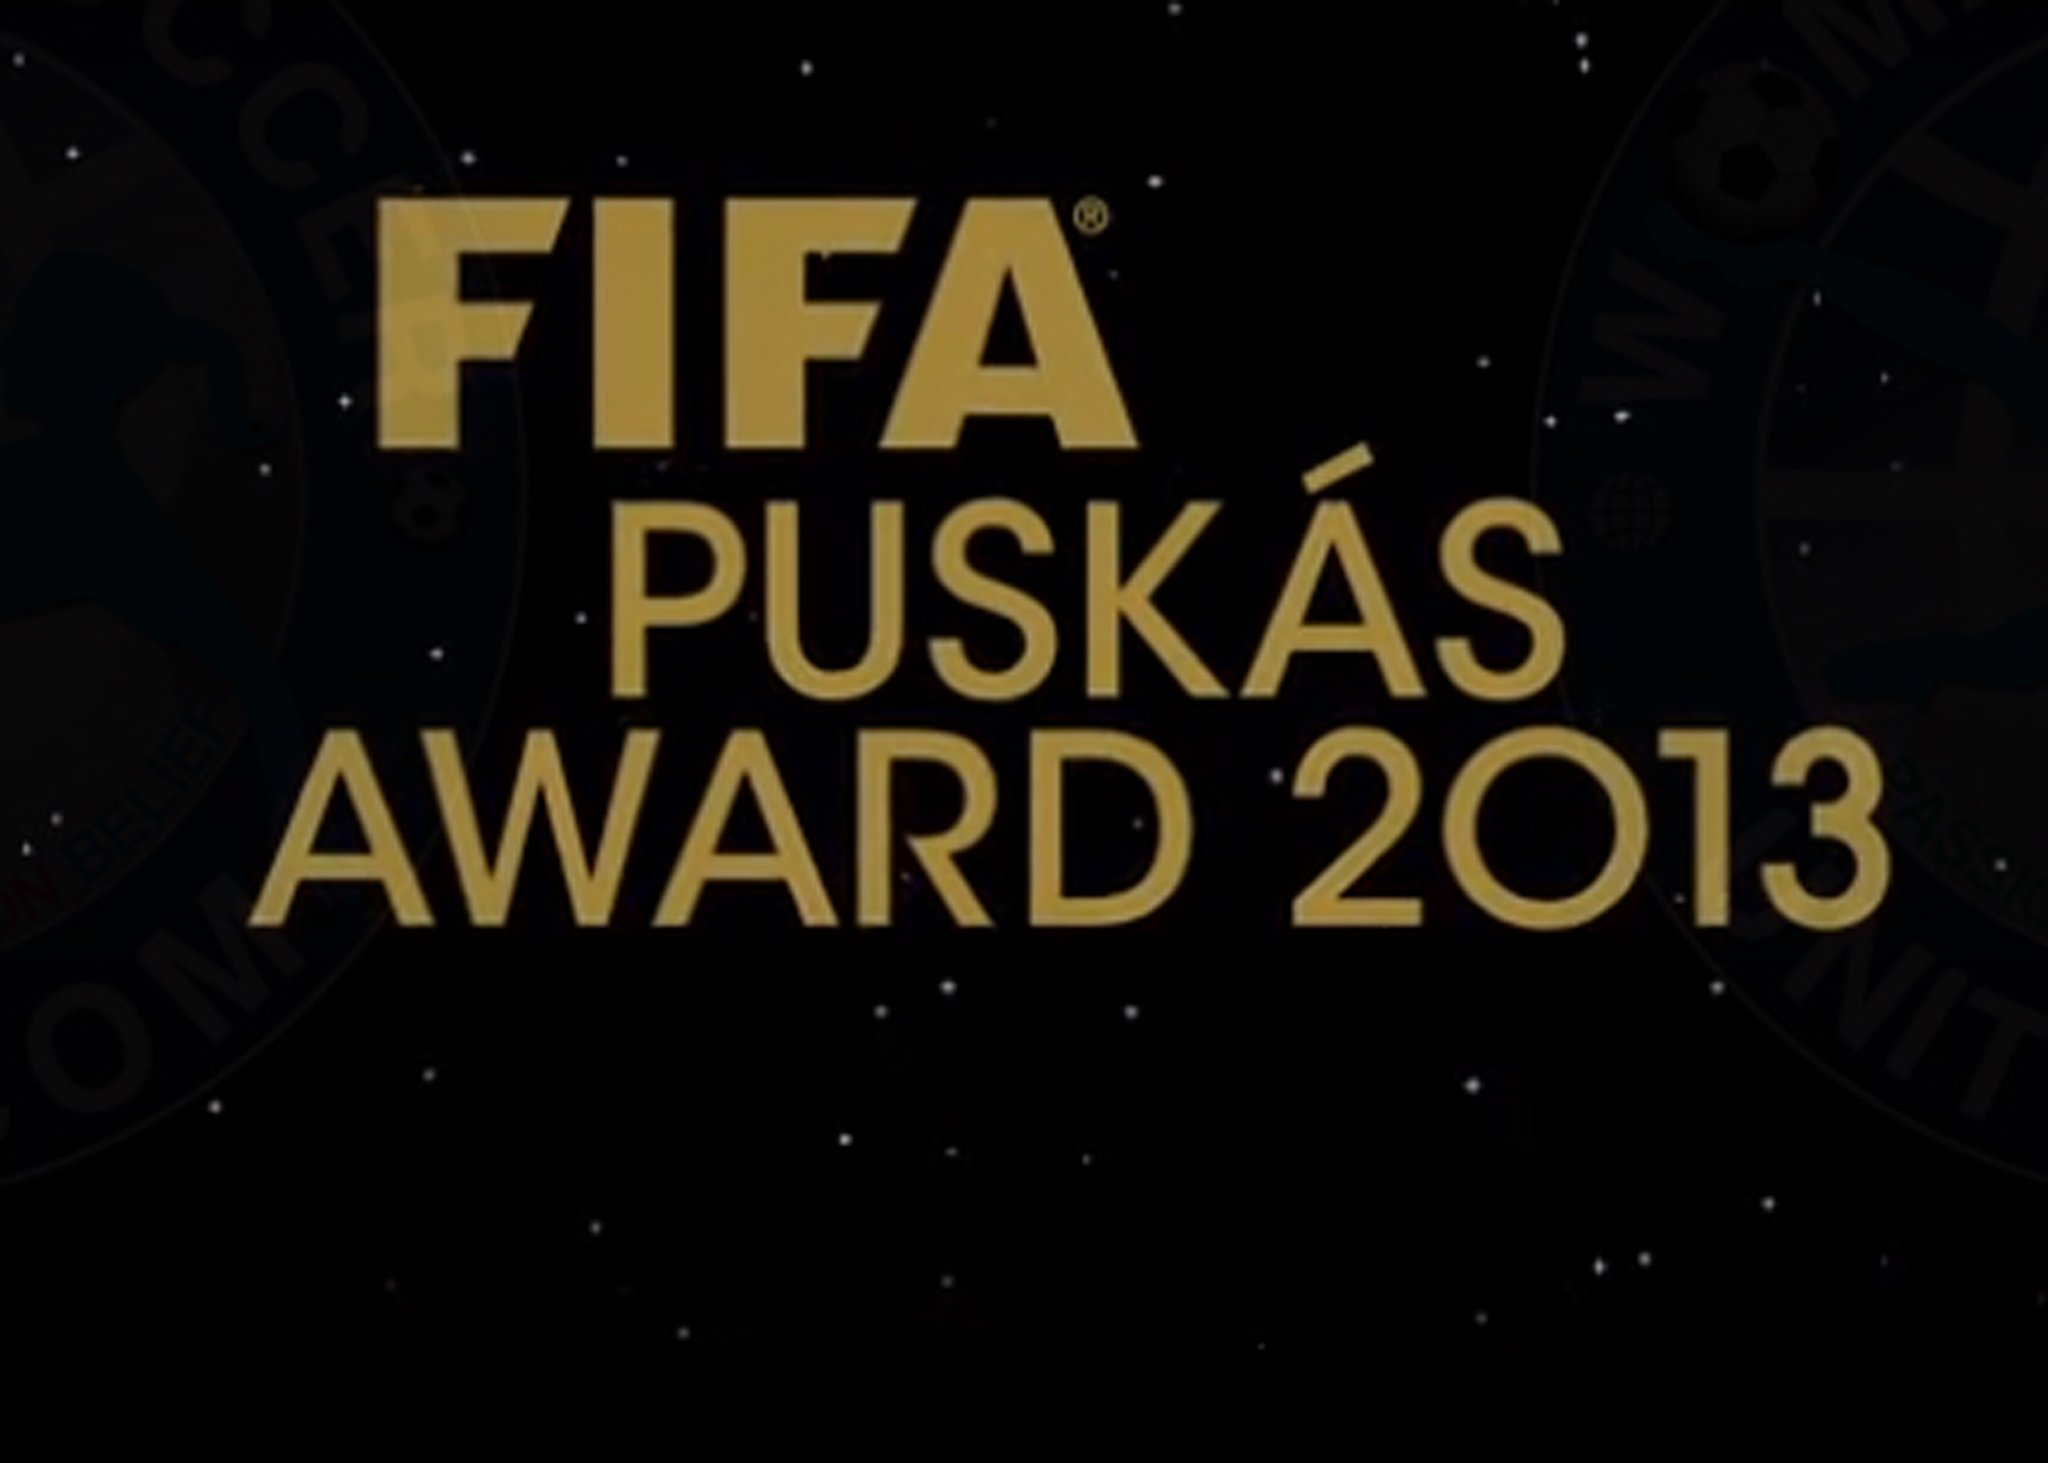 FIFA Puskás Award 2013: Ten best goals of the year announced – WATCH THIS VIDEO and VOTE